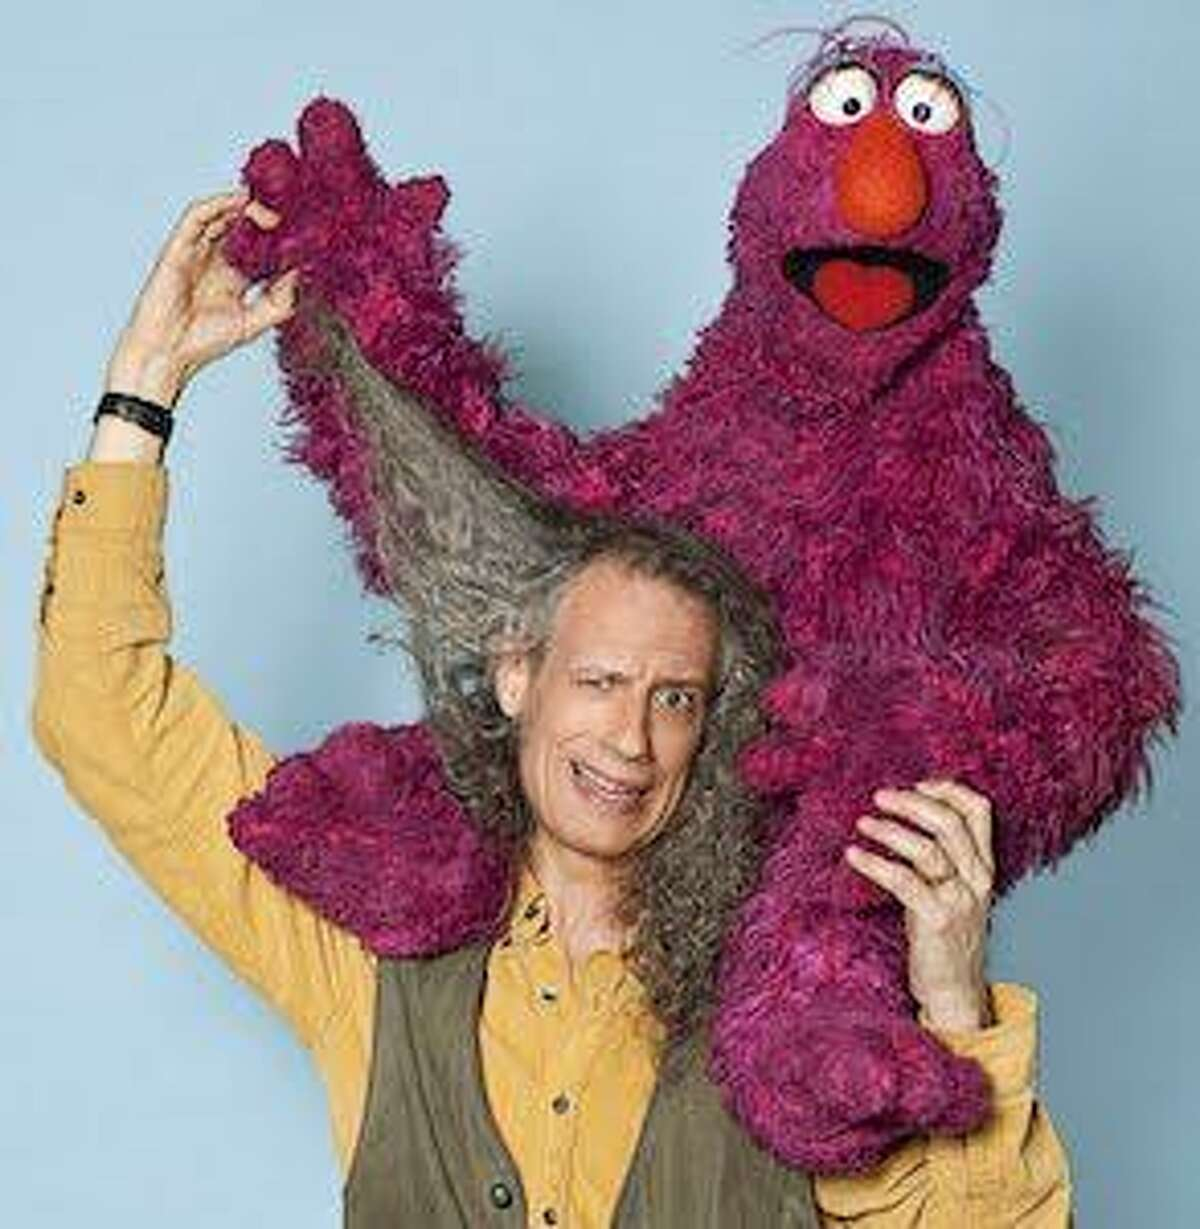 The Alan and Helen Hermes Arts Series Presents: Open Sesame! on Nov. 9 at 7 p.m. at the Mark Twain Library, 439 Redding Road, West Redding. The program is a celebration of the 50th anniversary of Sesame Street. For more information, visit marktwain library.org.